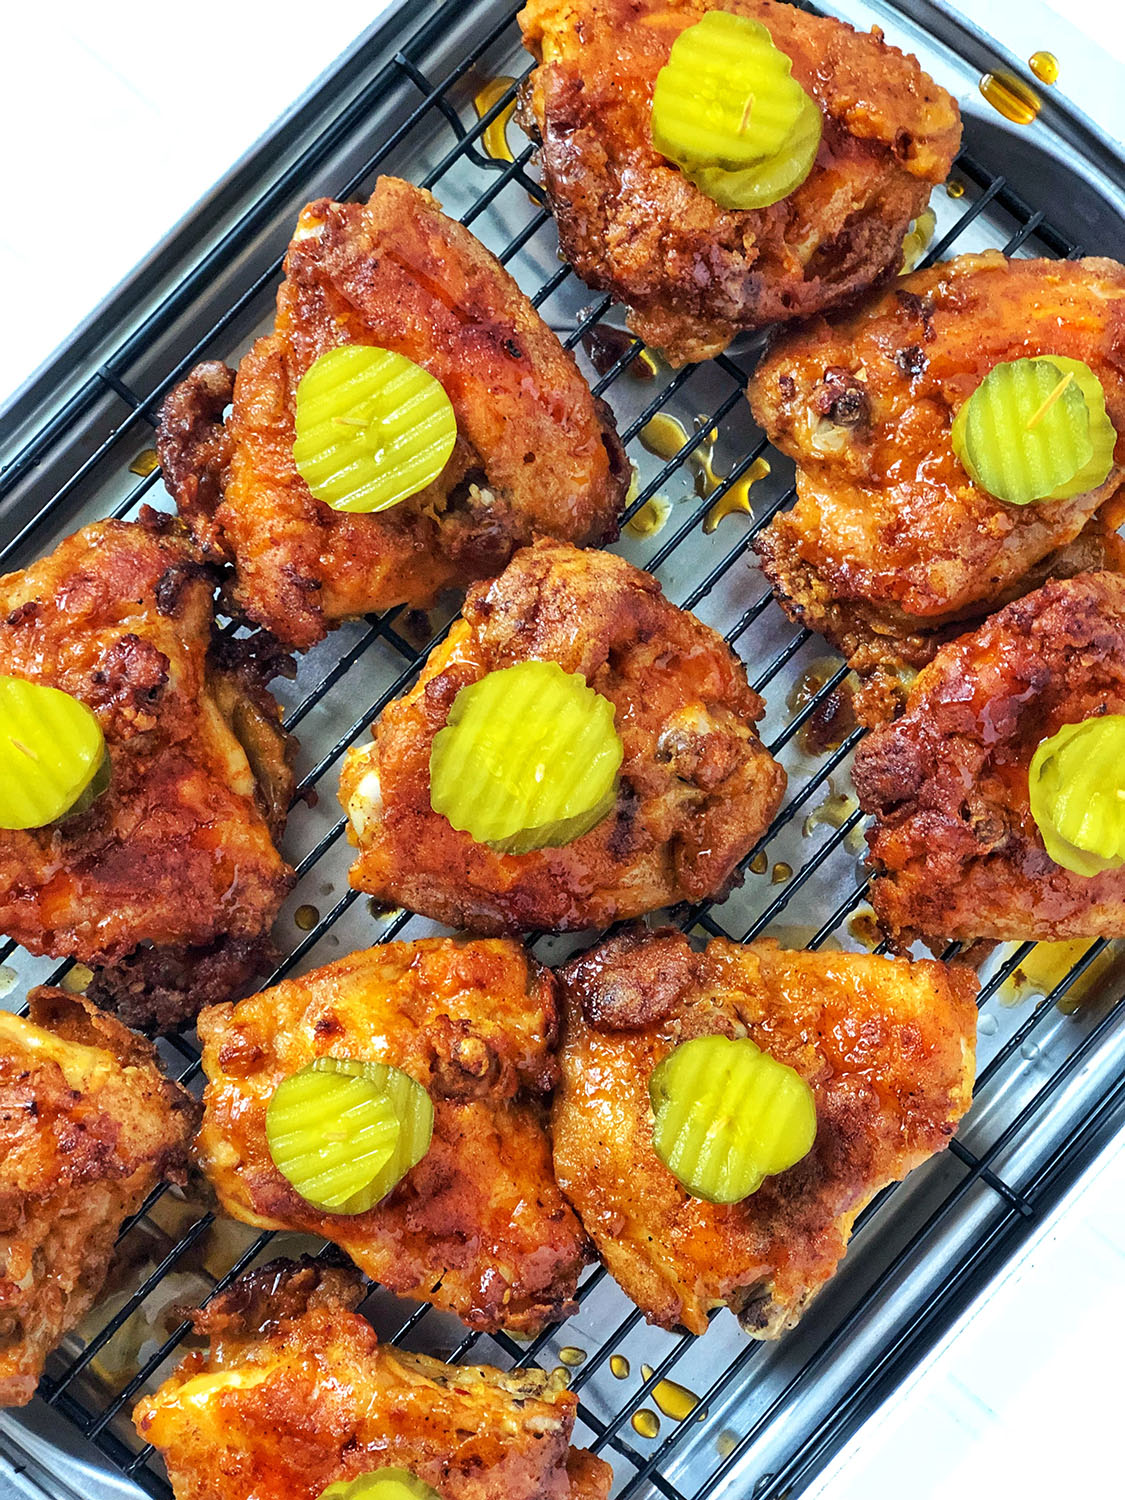 bakedhotchicken2.jpg